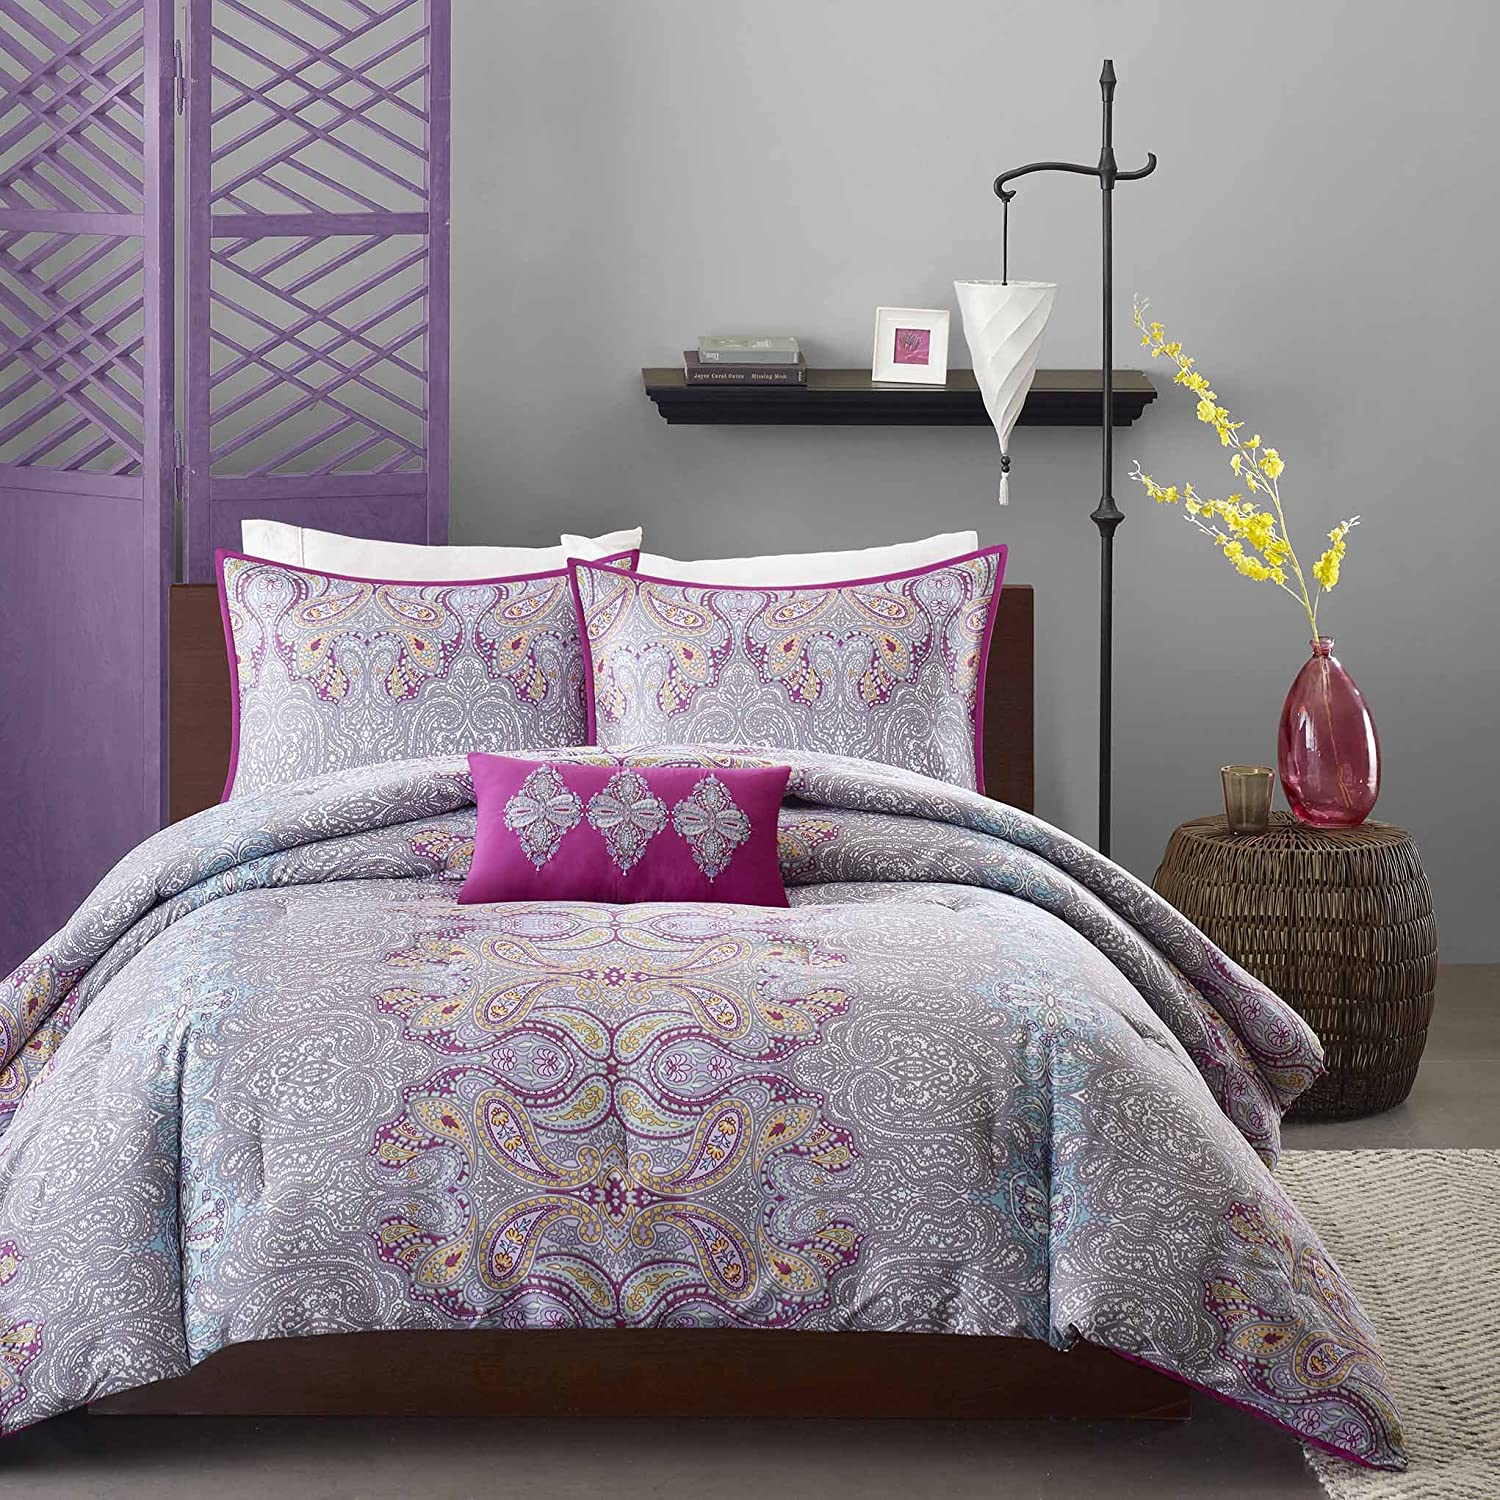 Mizone Bedding Ease Bedding with Style